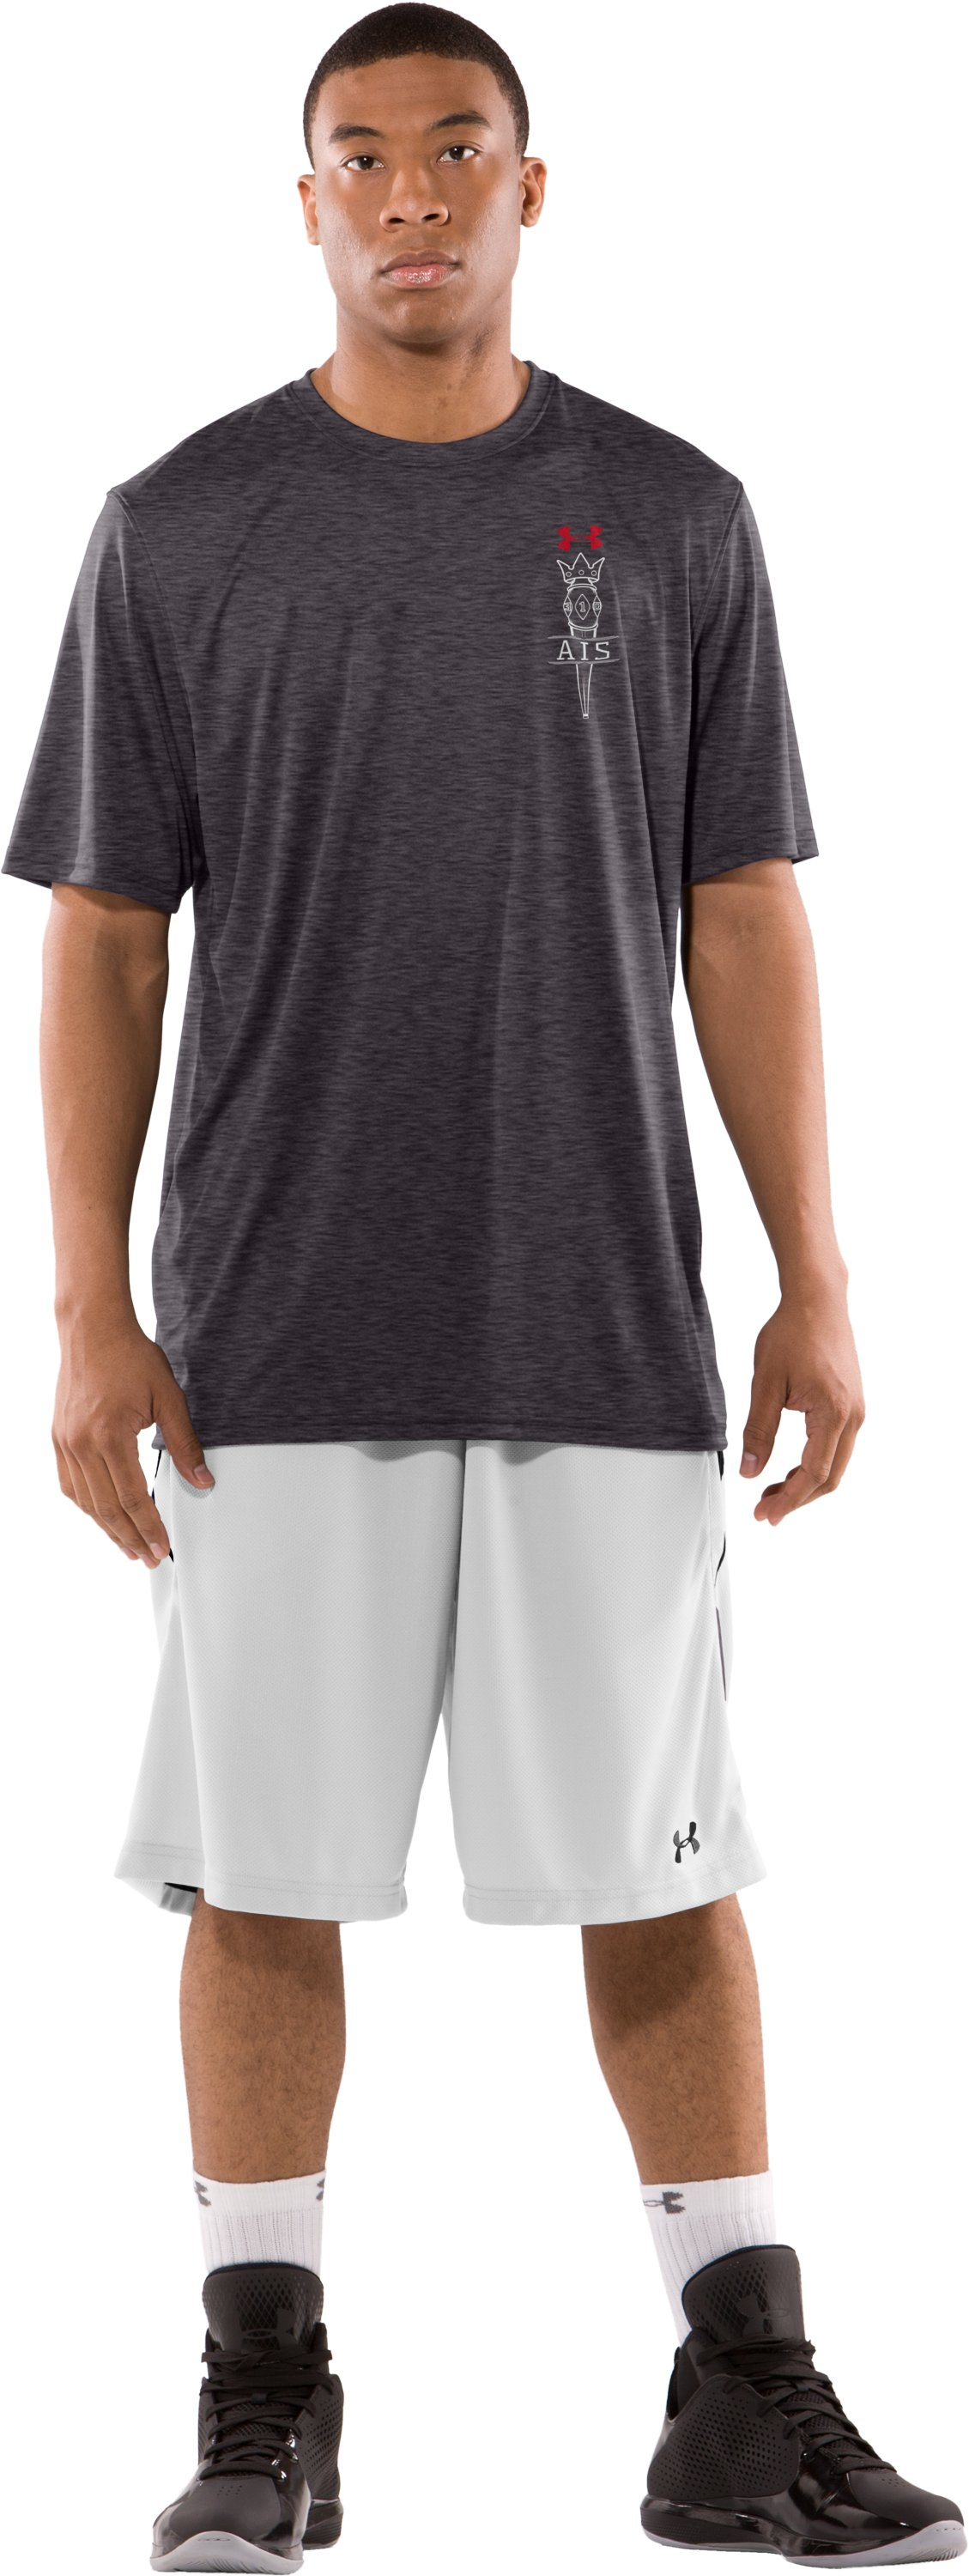 Men's Brandon Jennings Player Reppin' T-Shirt, Carbon Heather, Front